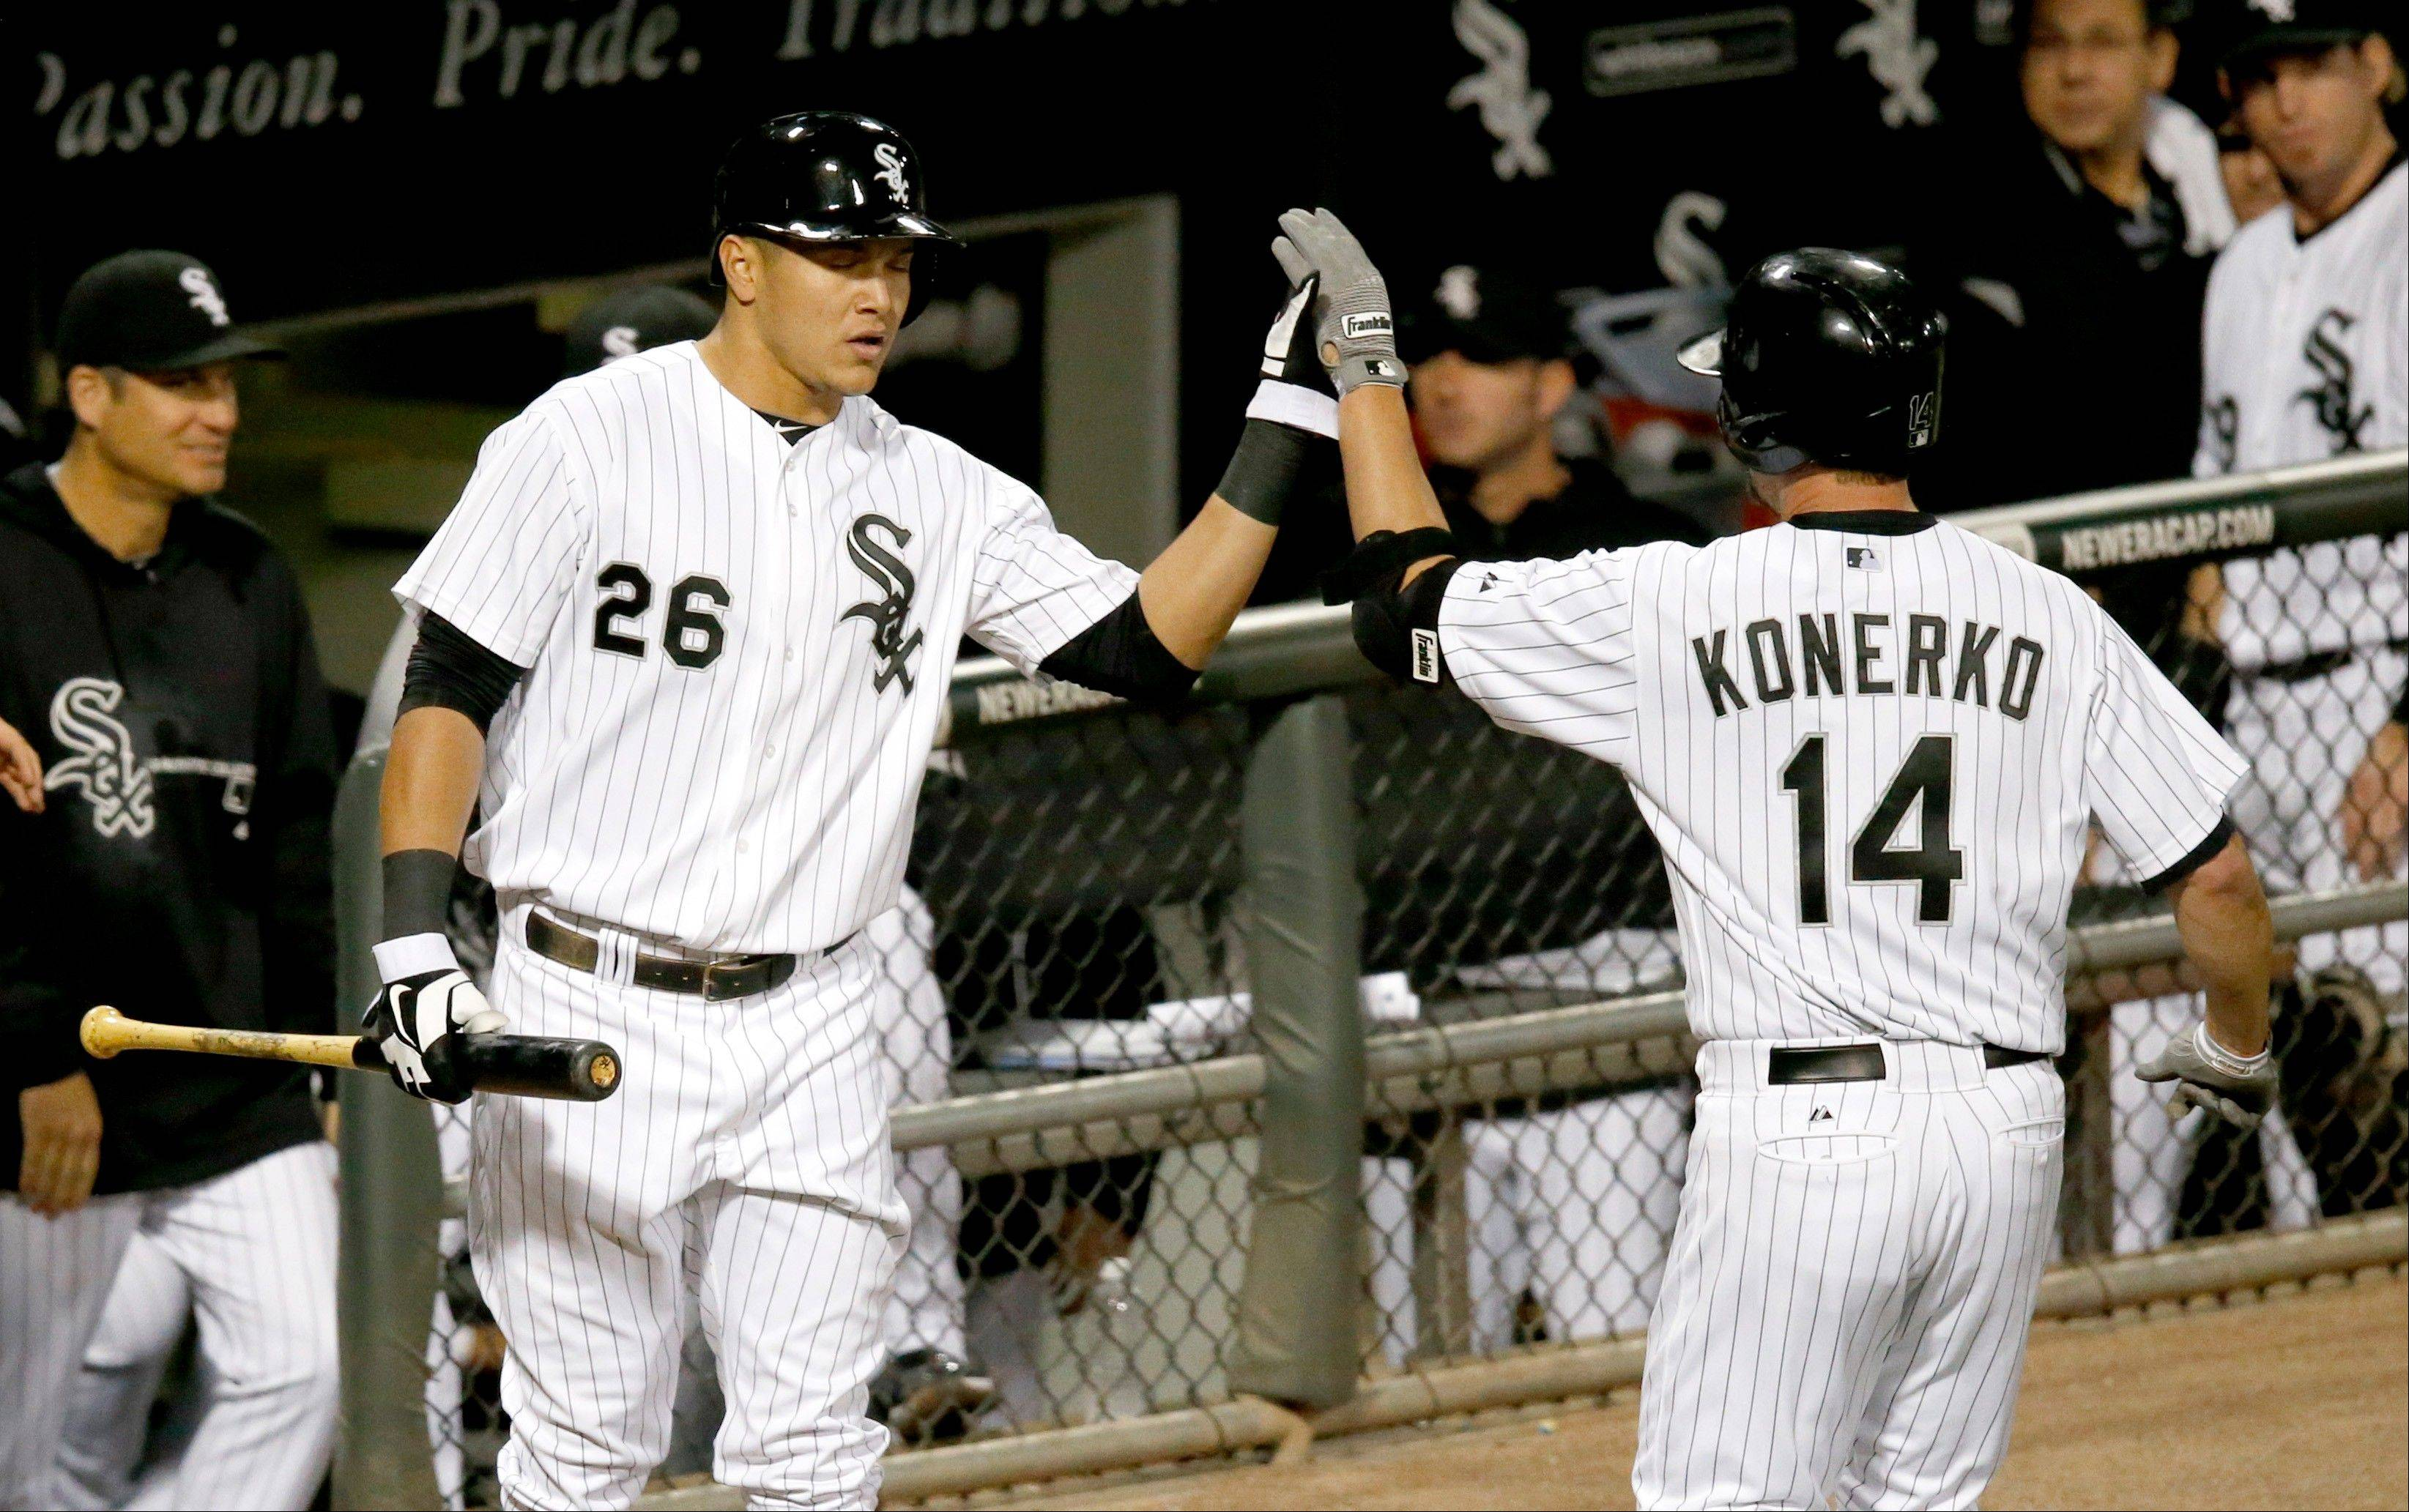 White Sox' Konerko puts HR on right path